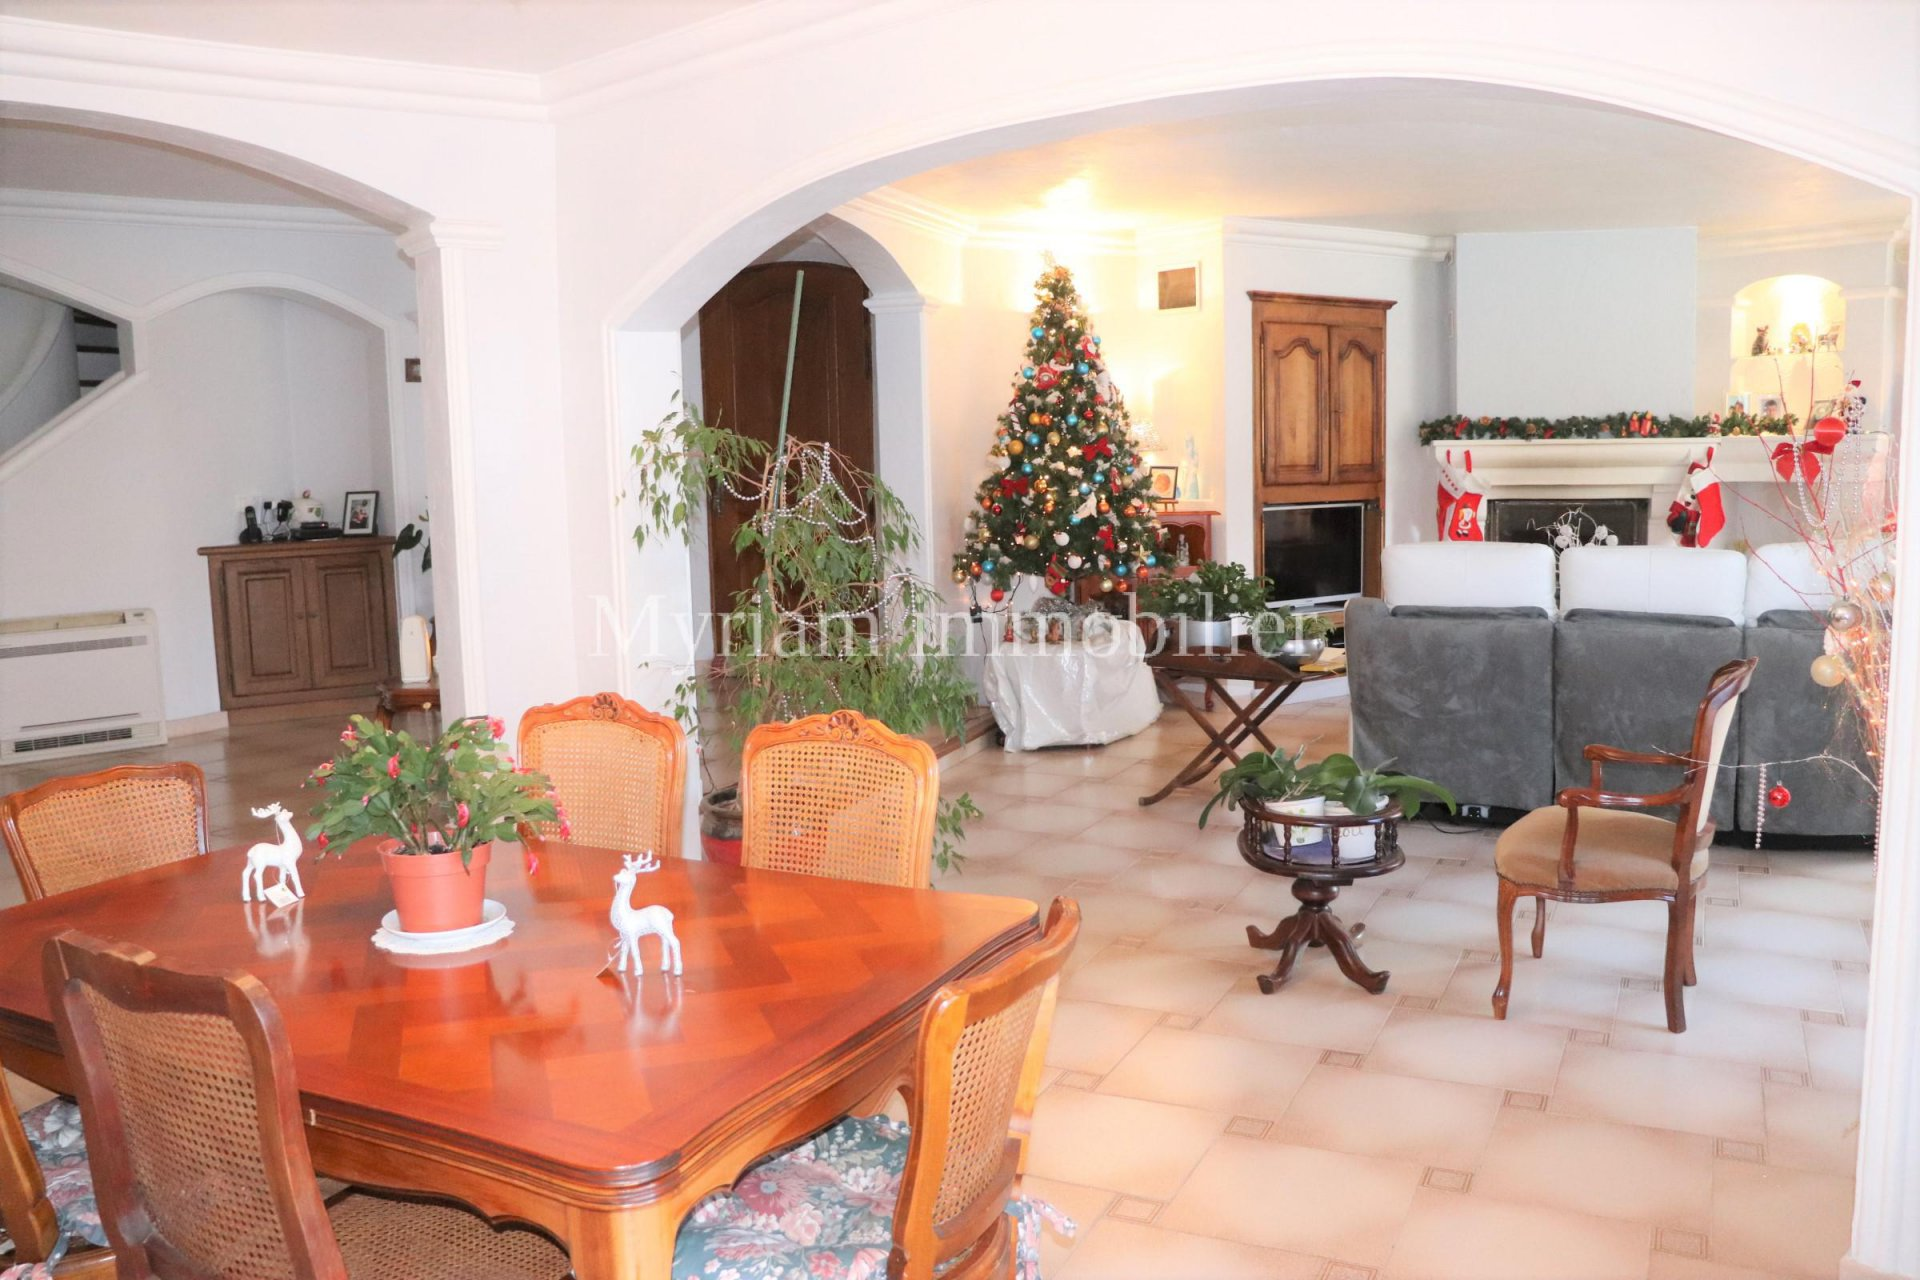 6 room villa with pool in St CEZAIRE